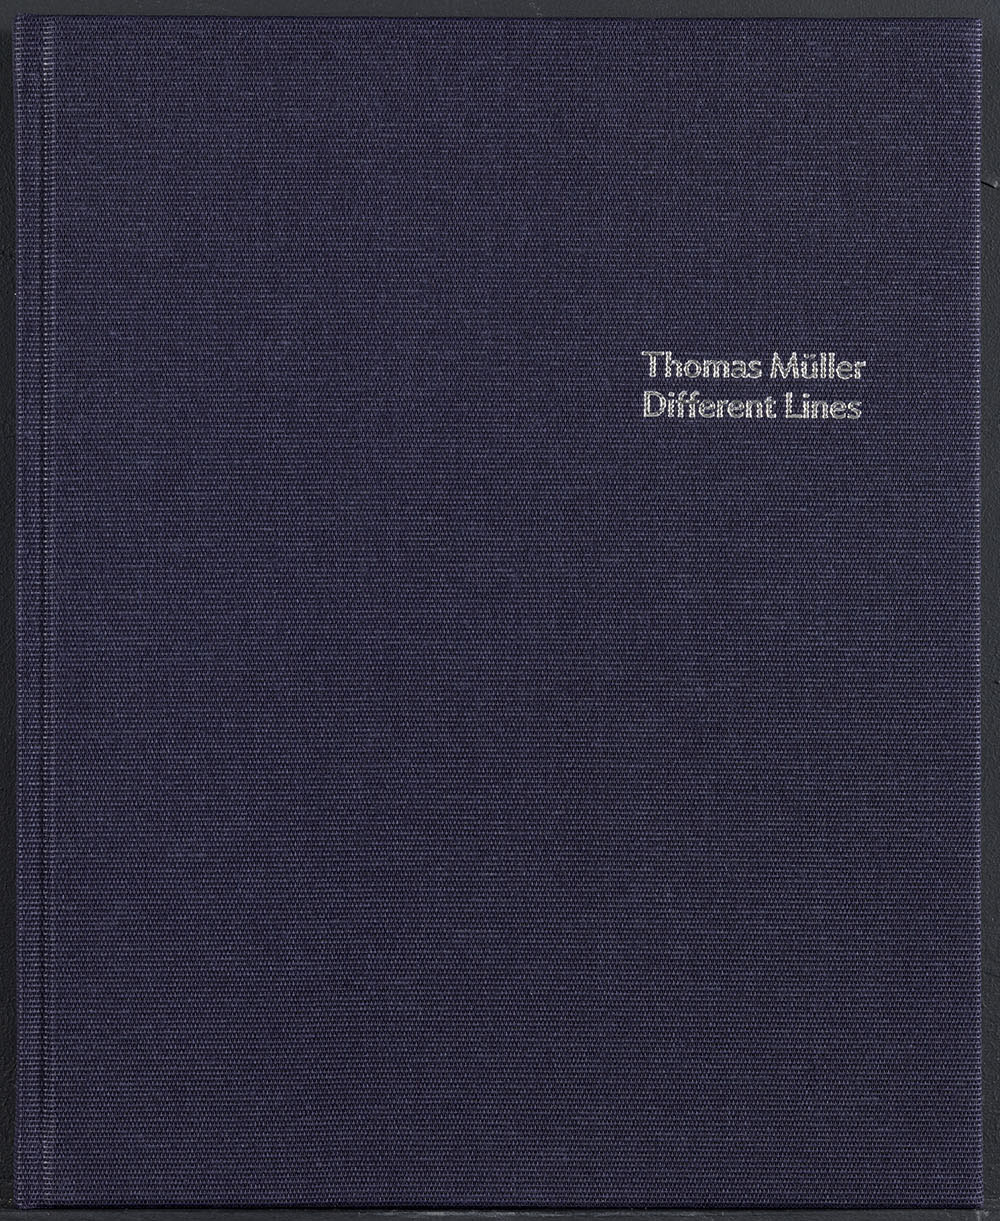 Patrick-heide-thomas-mueller-catalogue-cover